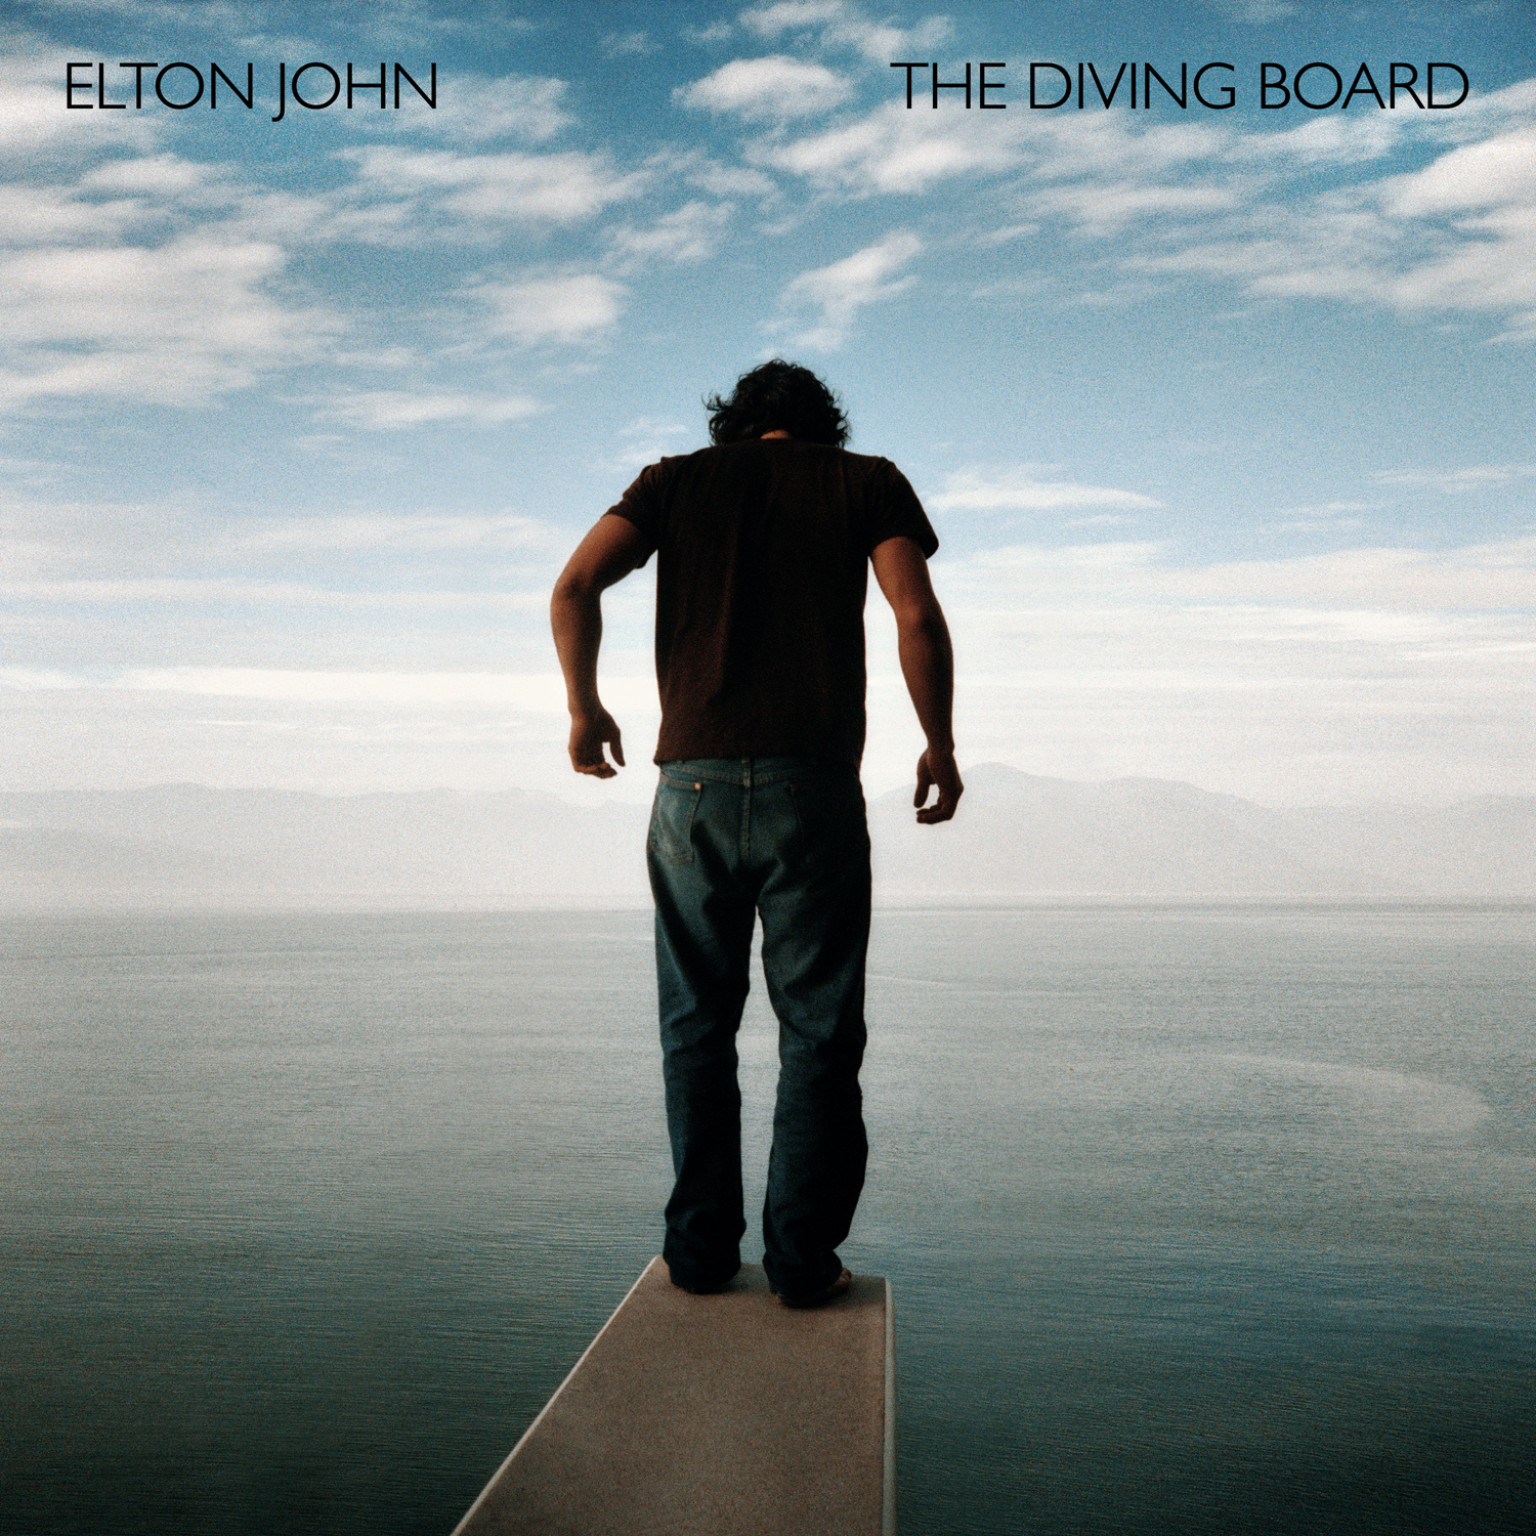 O elton john the diving board facebook